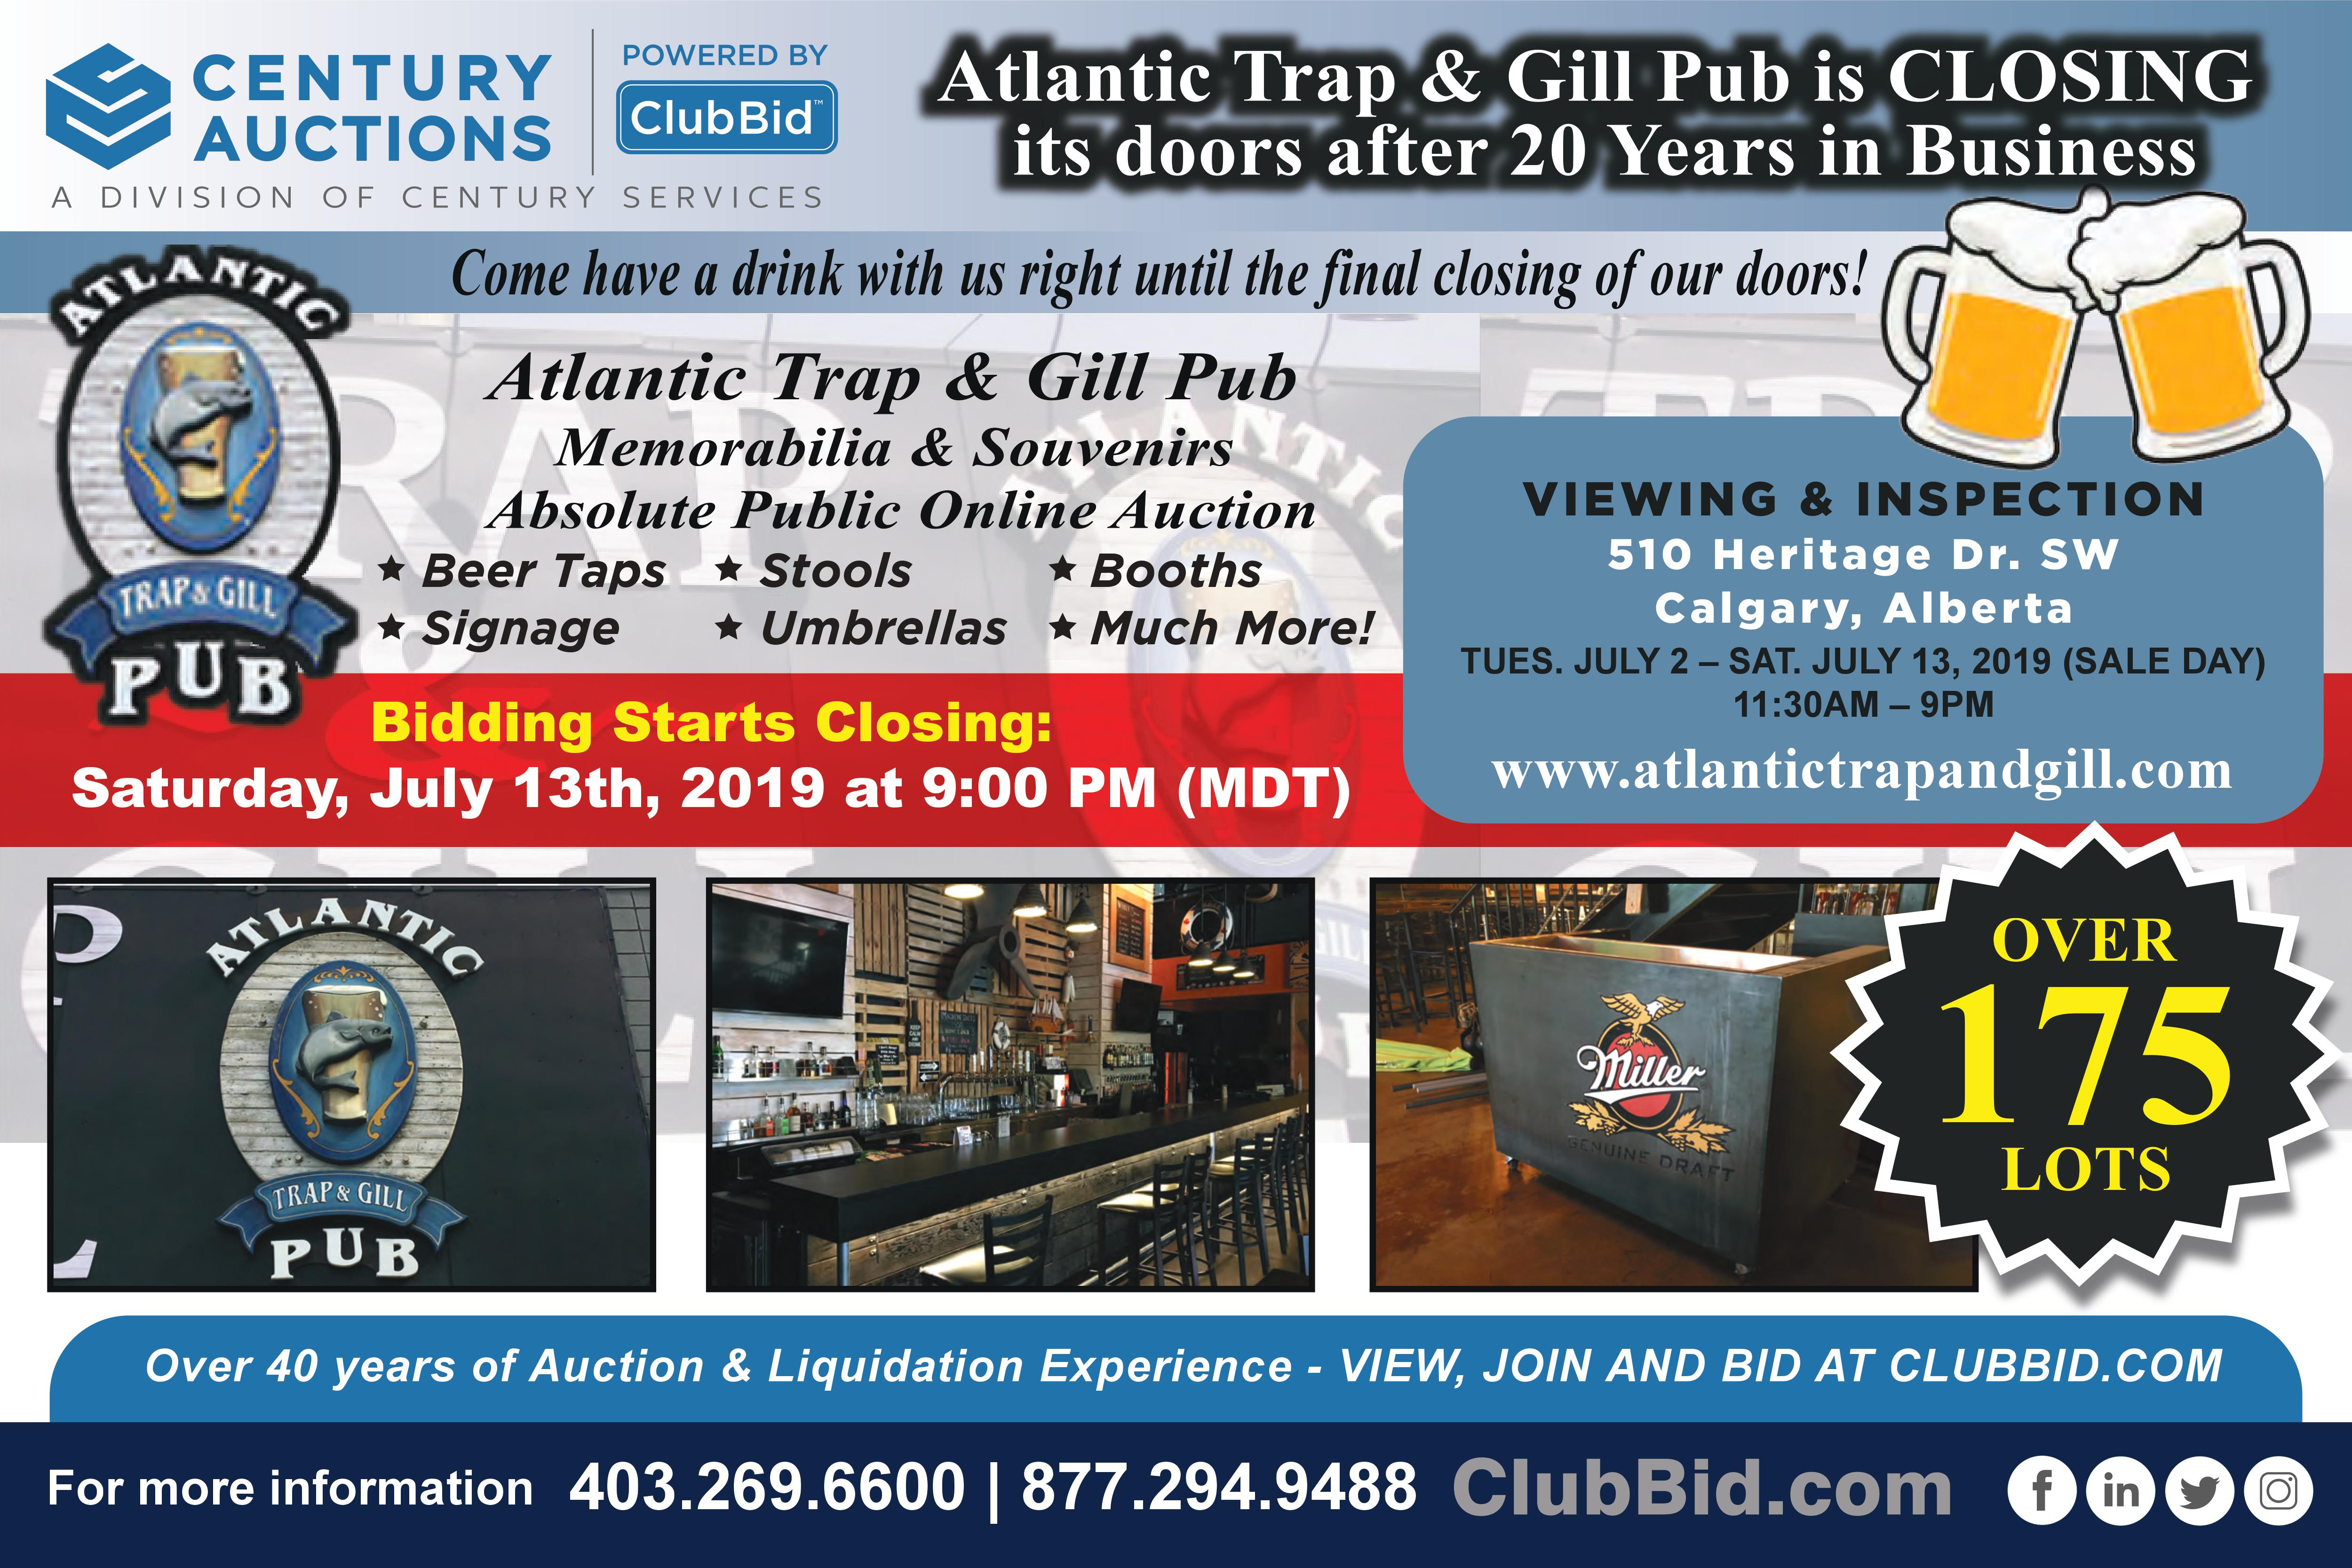 Atlantic Trap and Gill placard